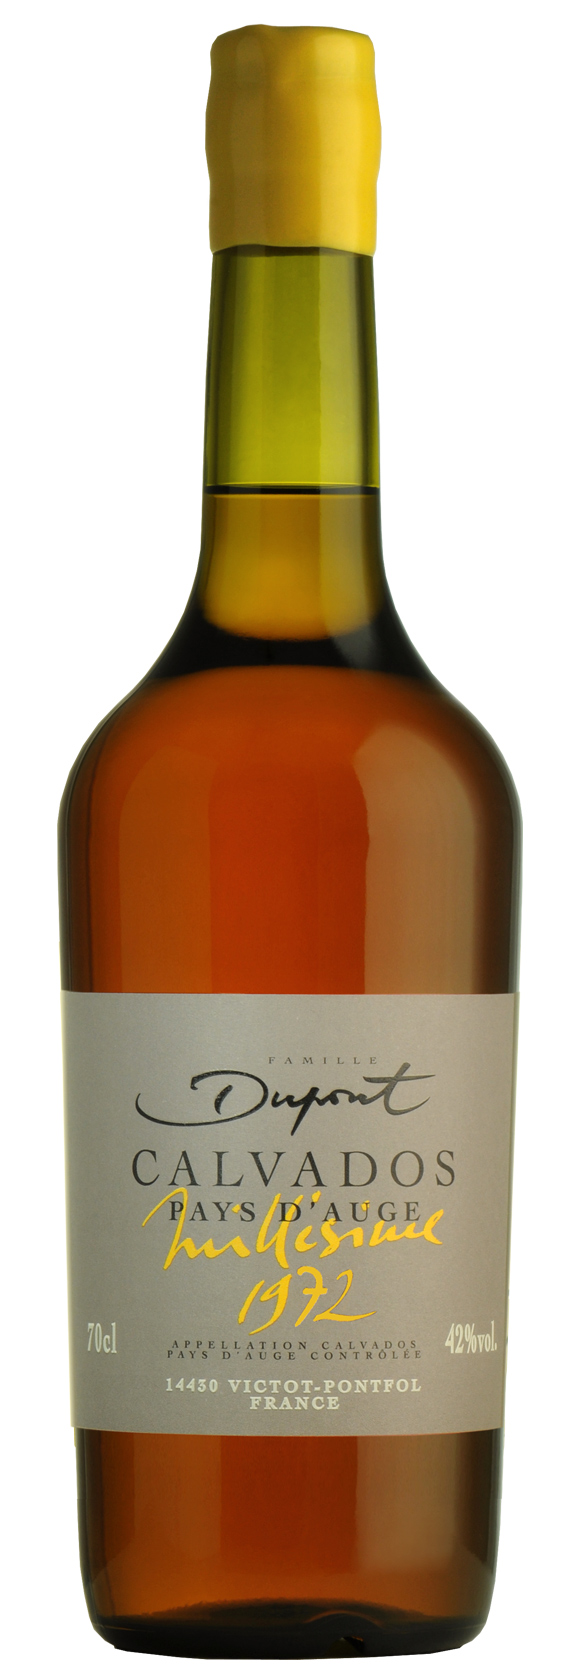 Domaine Dupont 1972